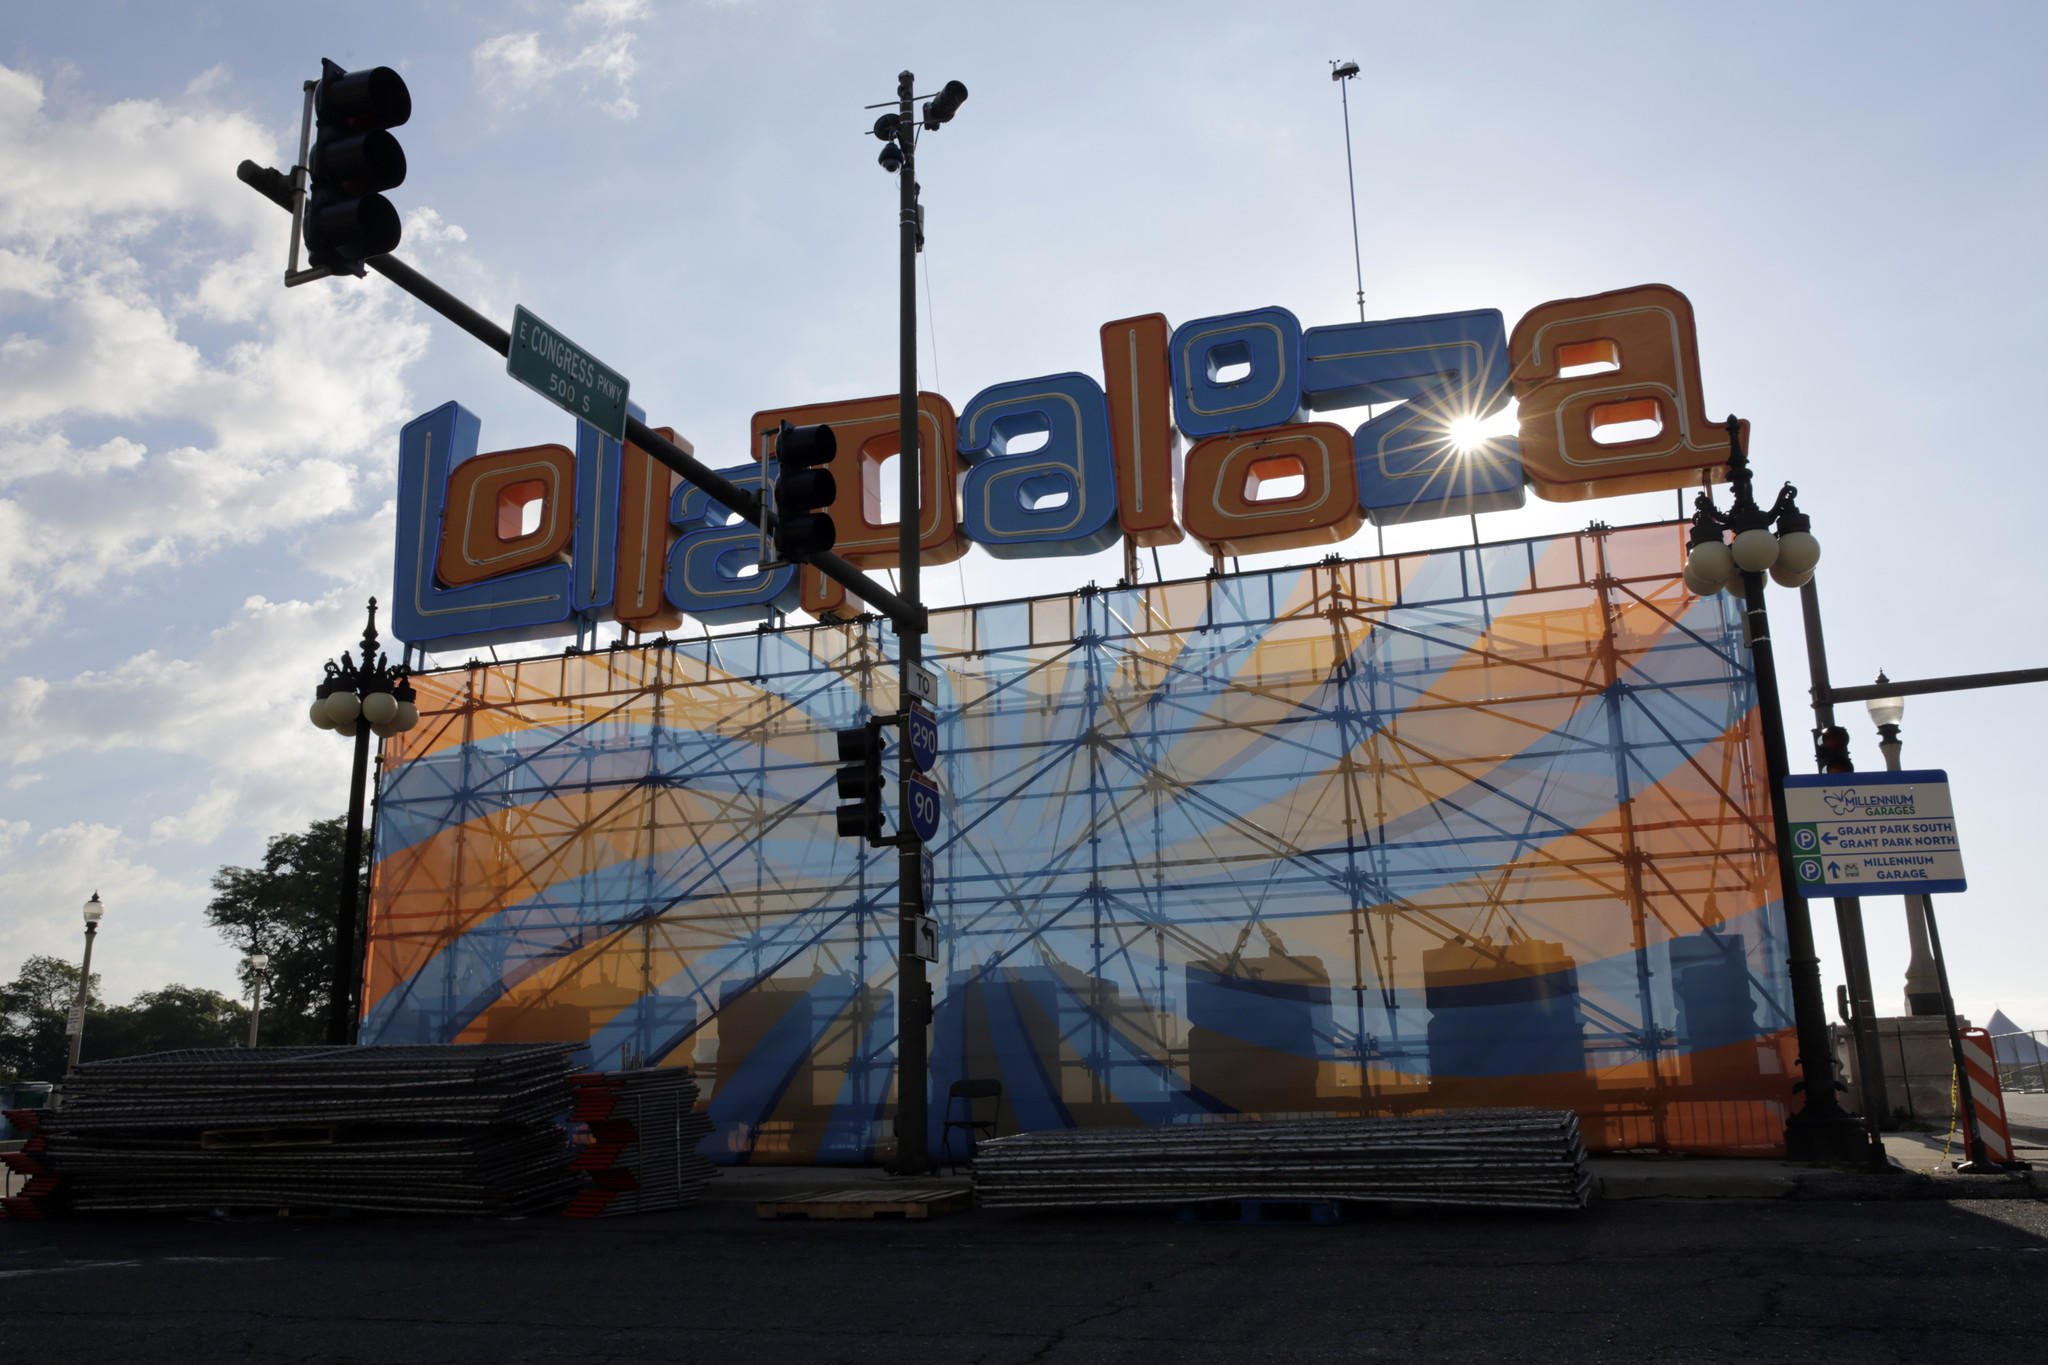 The Lollapalooza front gate.